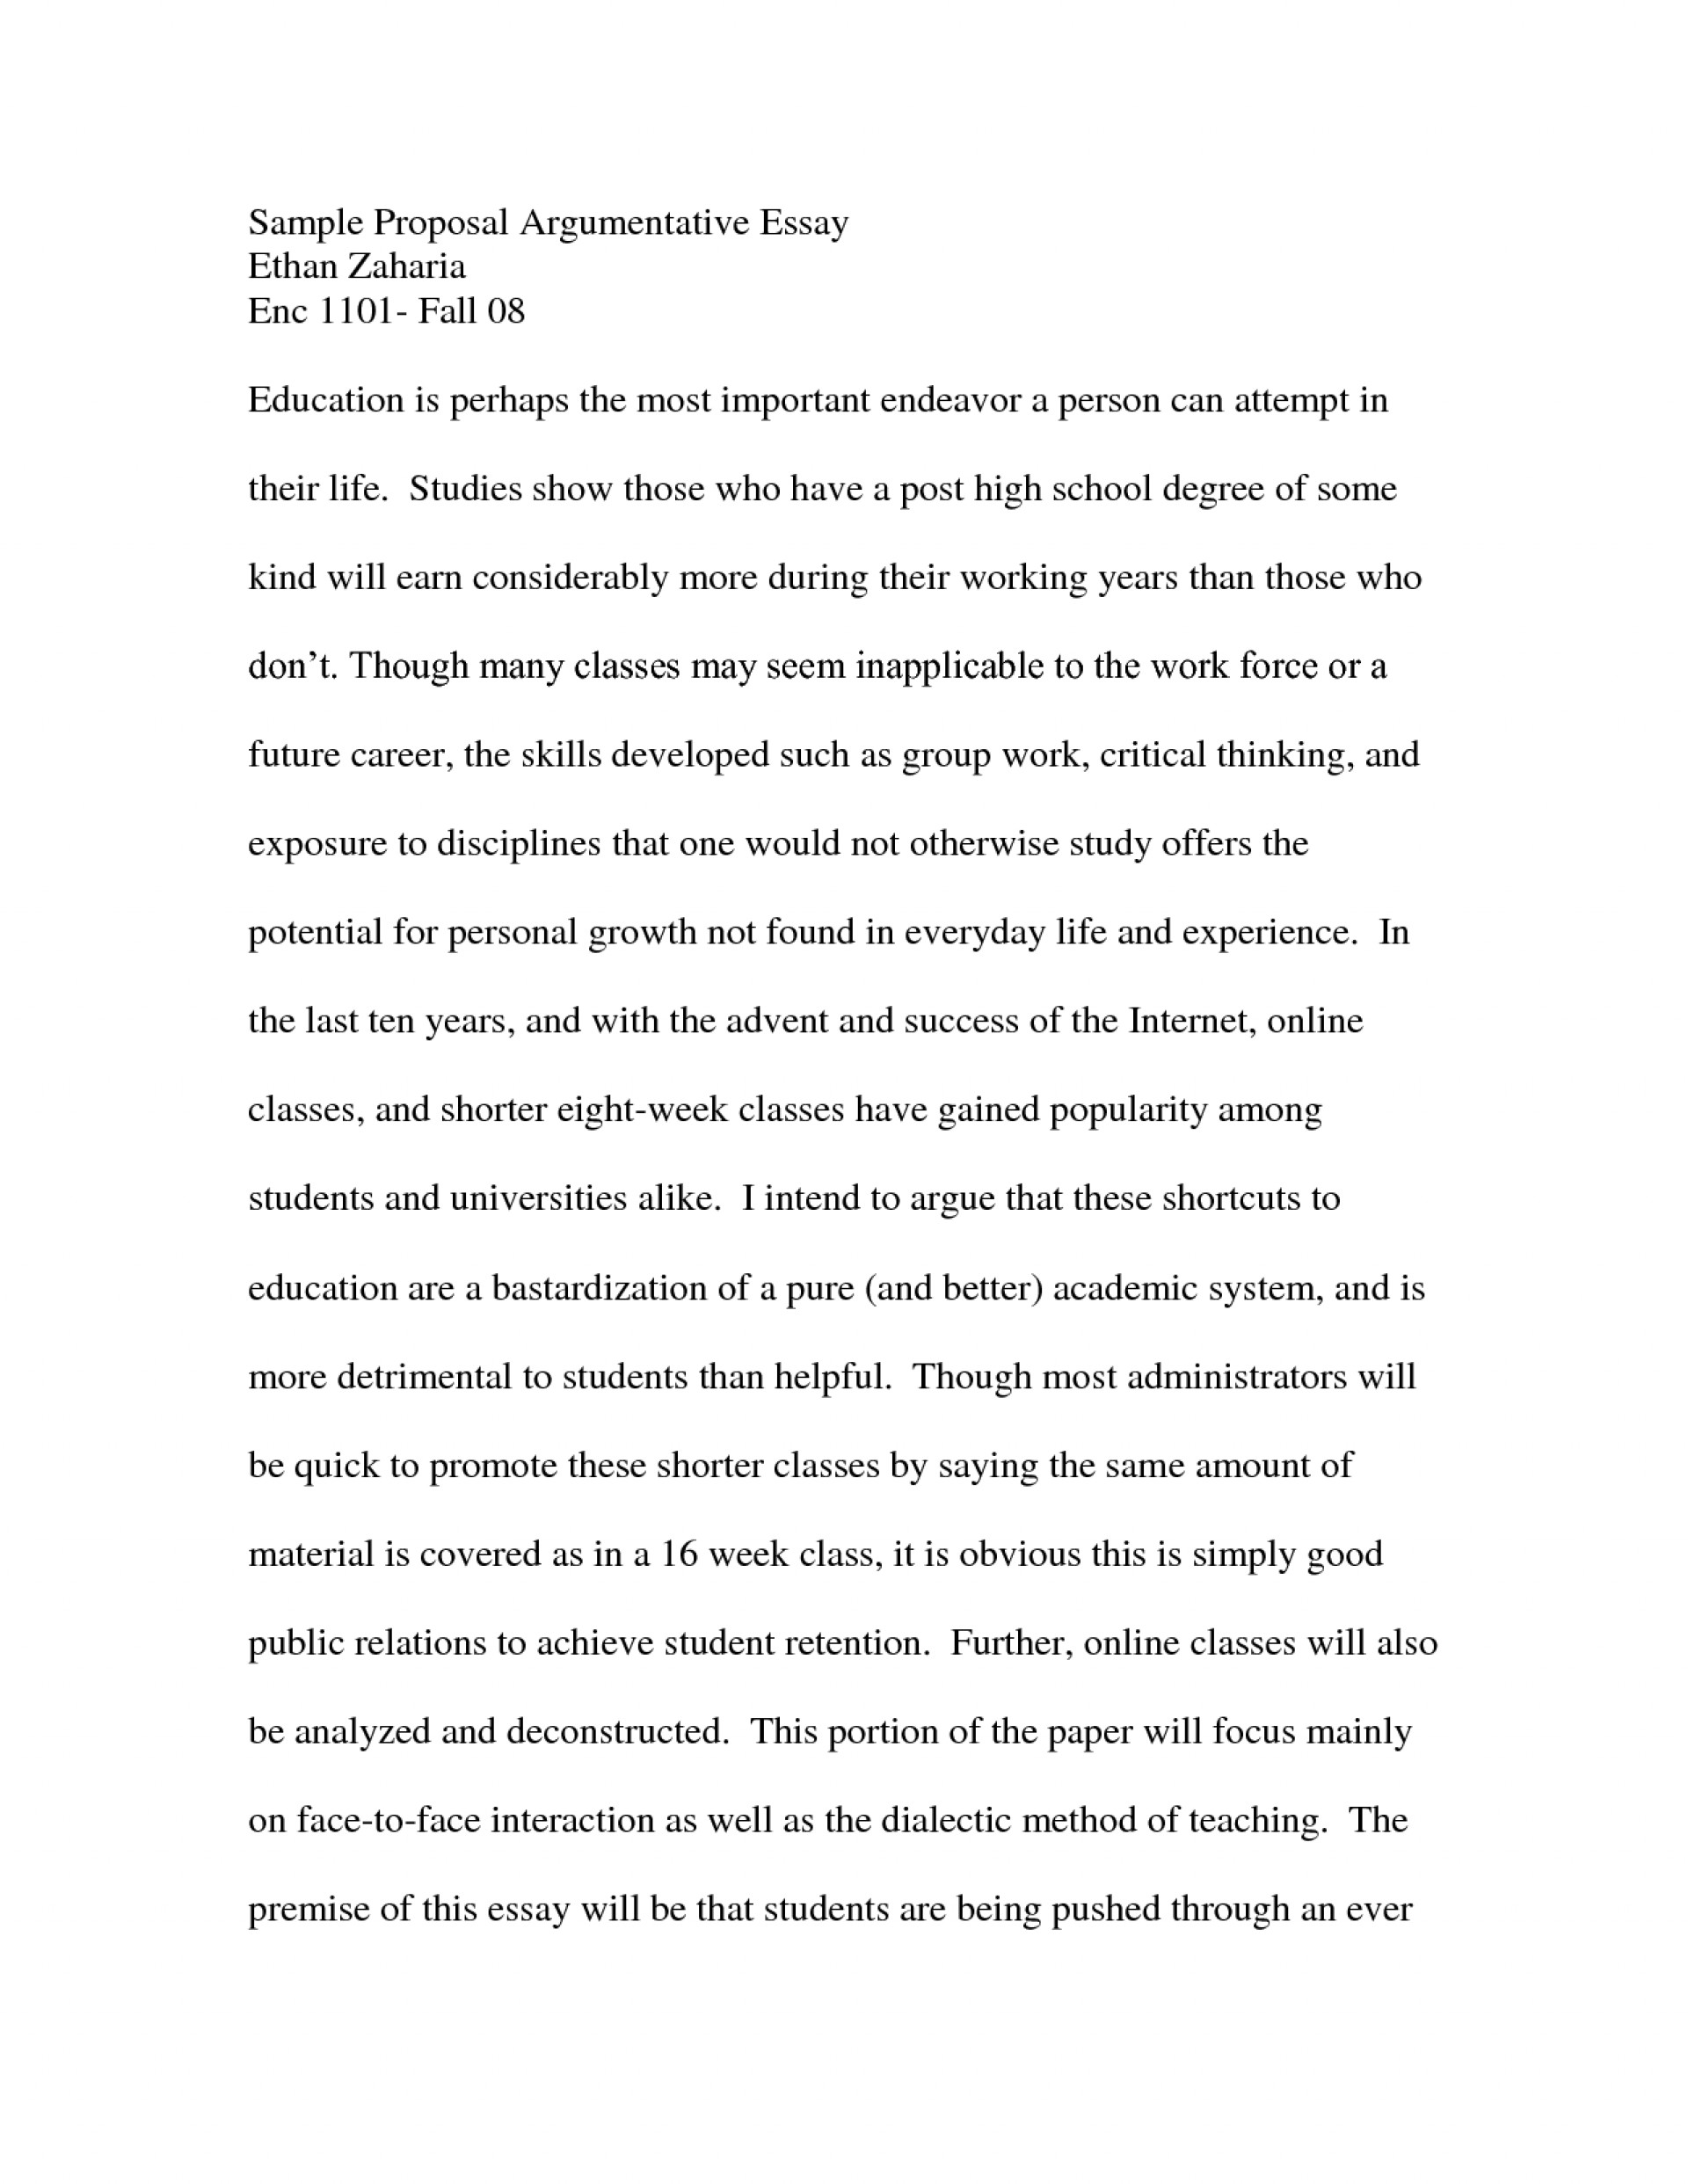 007 Essay Example 3d7hsocgst What Is Top A Proposal Argument The Purpose Of 1920